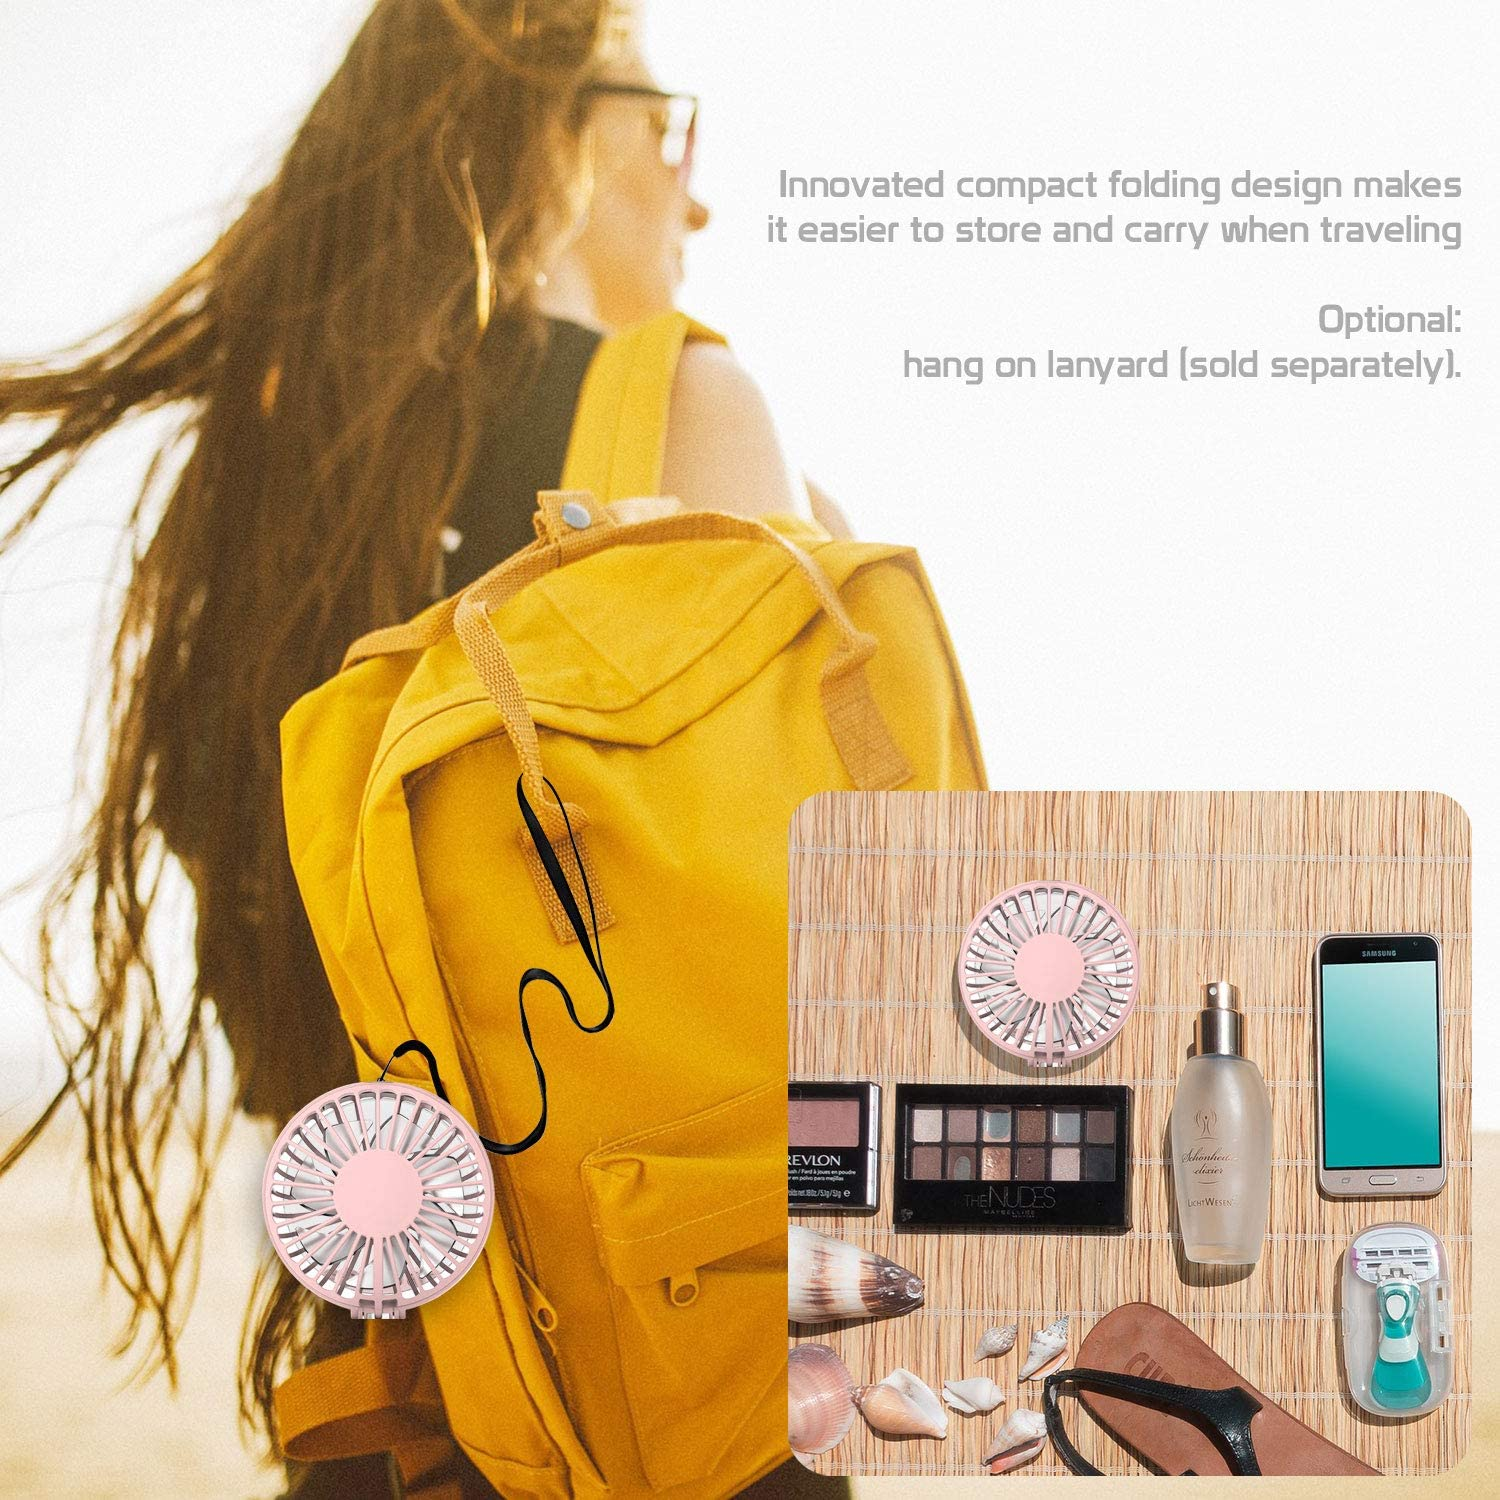 Cellet 3 Speed Portable Mini Fan and Compact Mirror; Folding USB Rechargeable Cosmetic Beauty Air Cooling Fan.